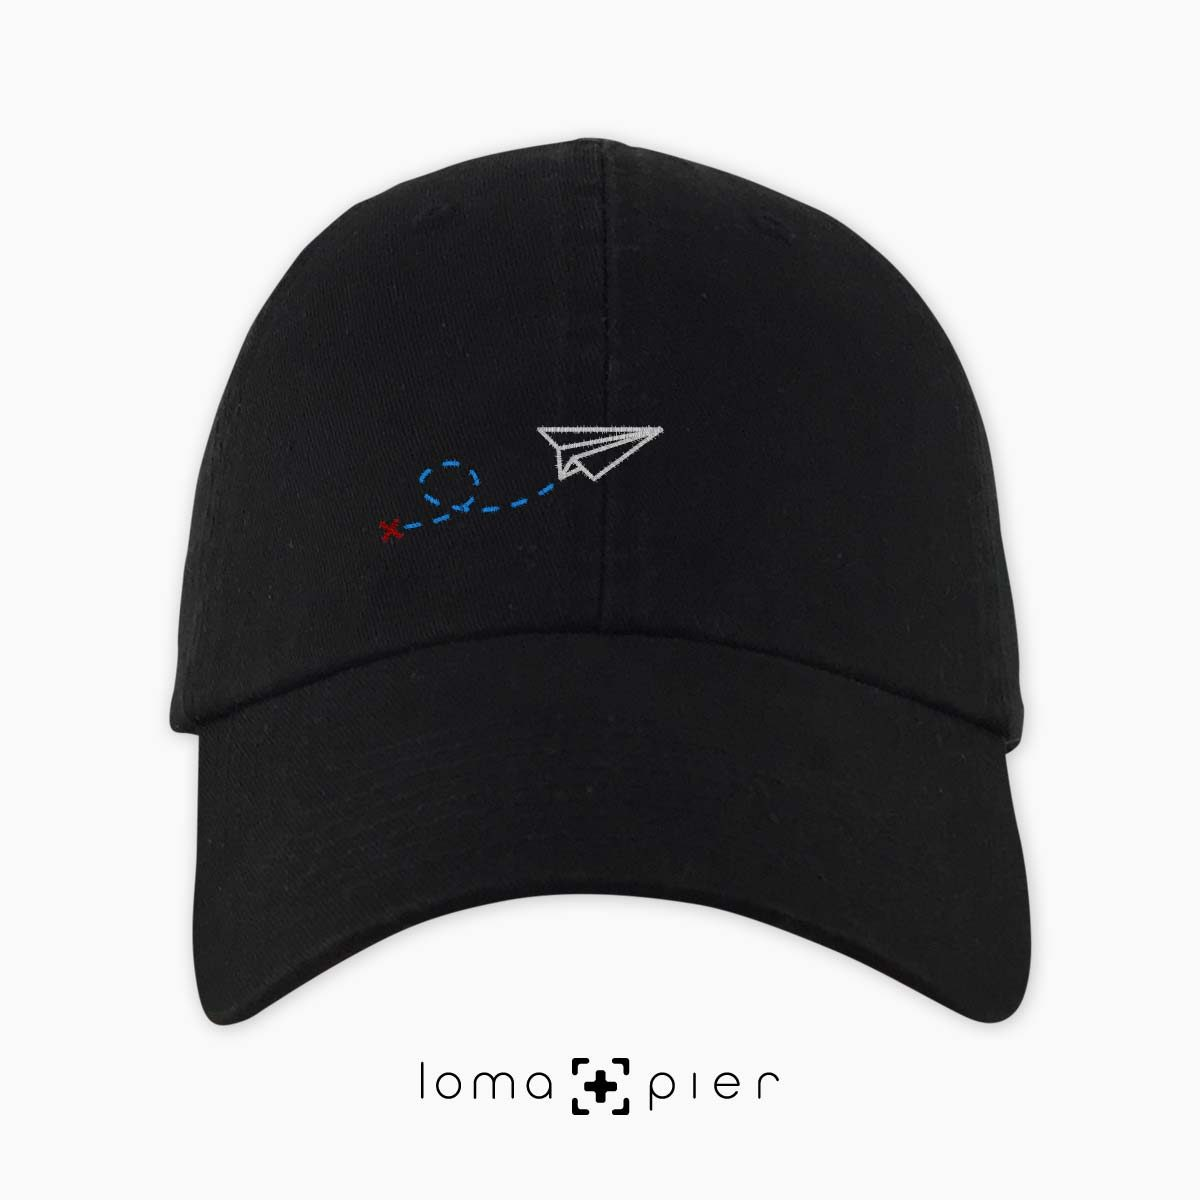 PAPER AIRPLANE icon embroidered on a black dad hat by loma+pier hat store made in the USA